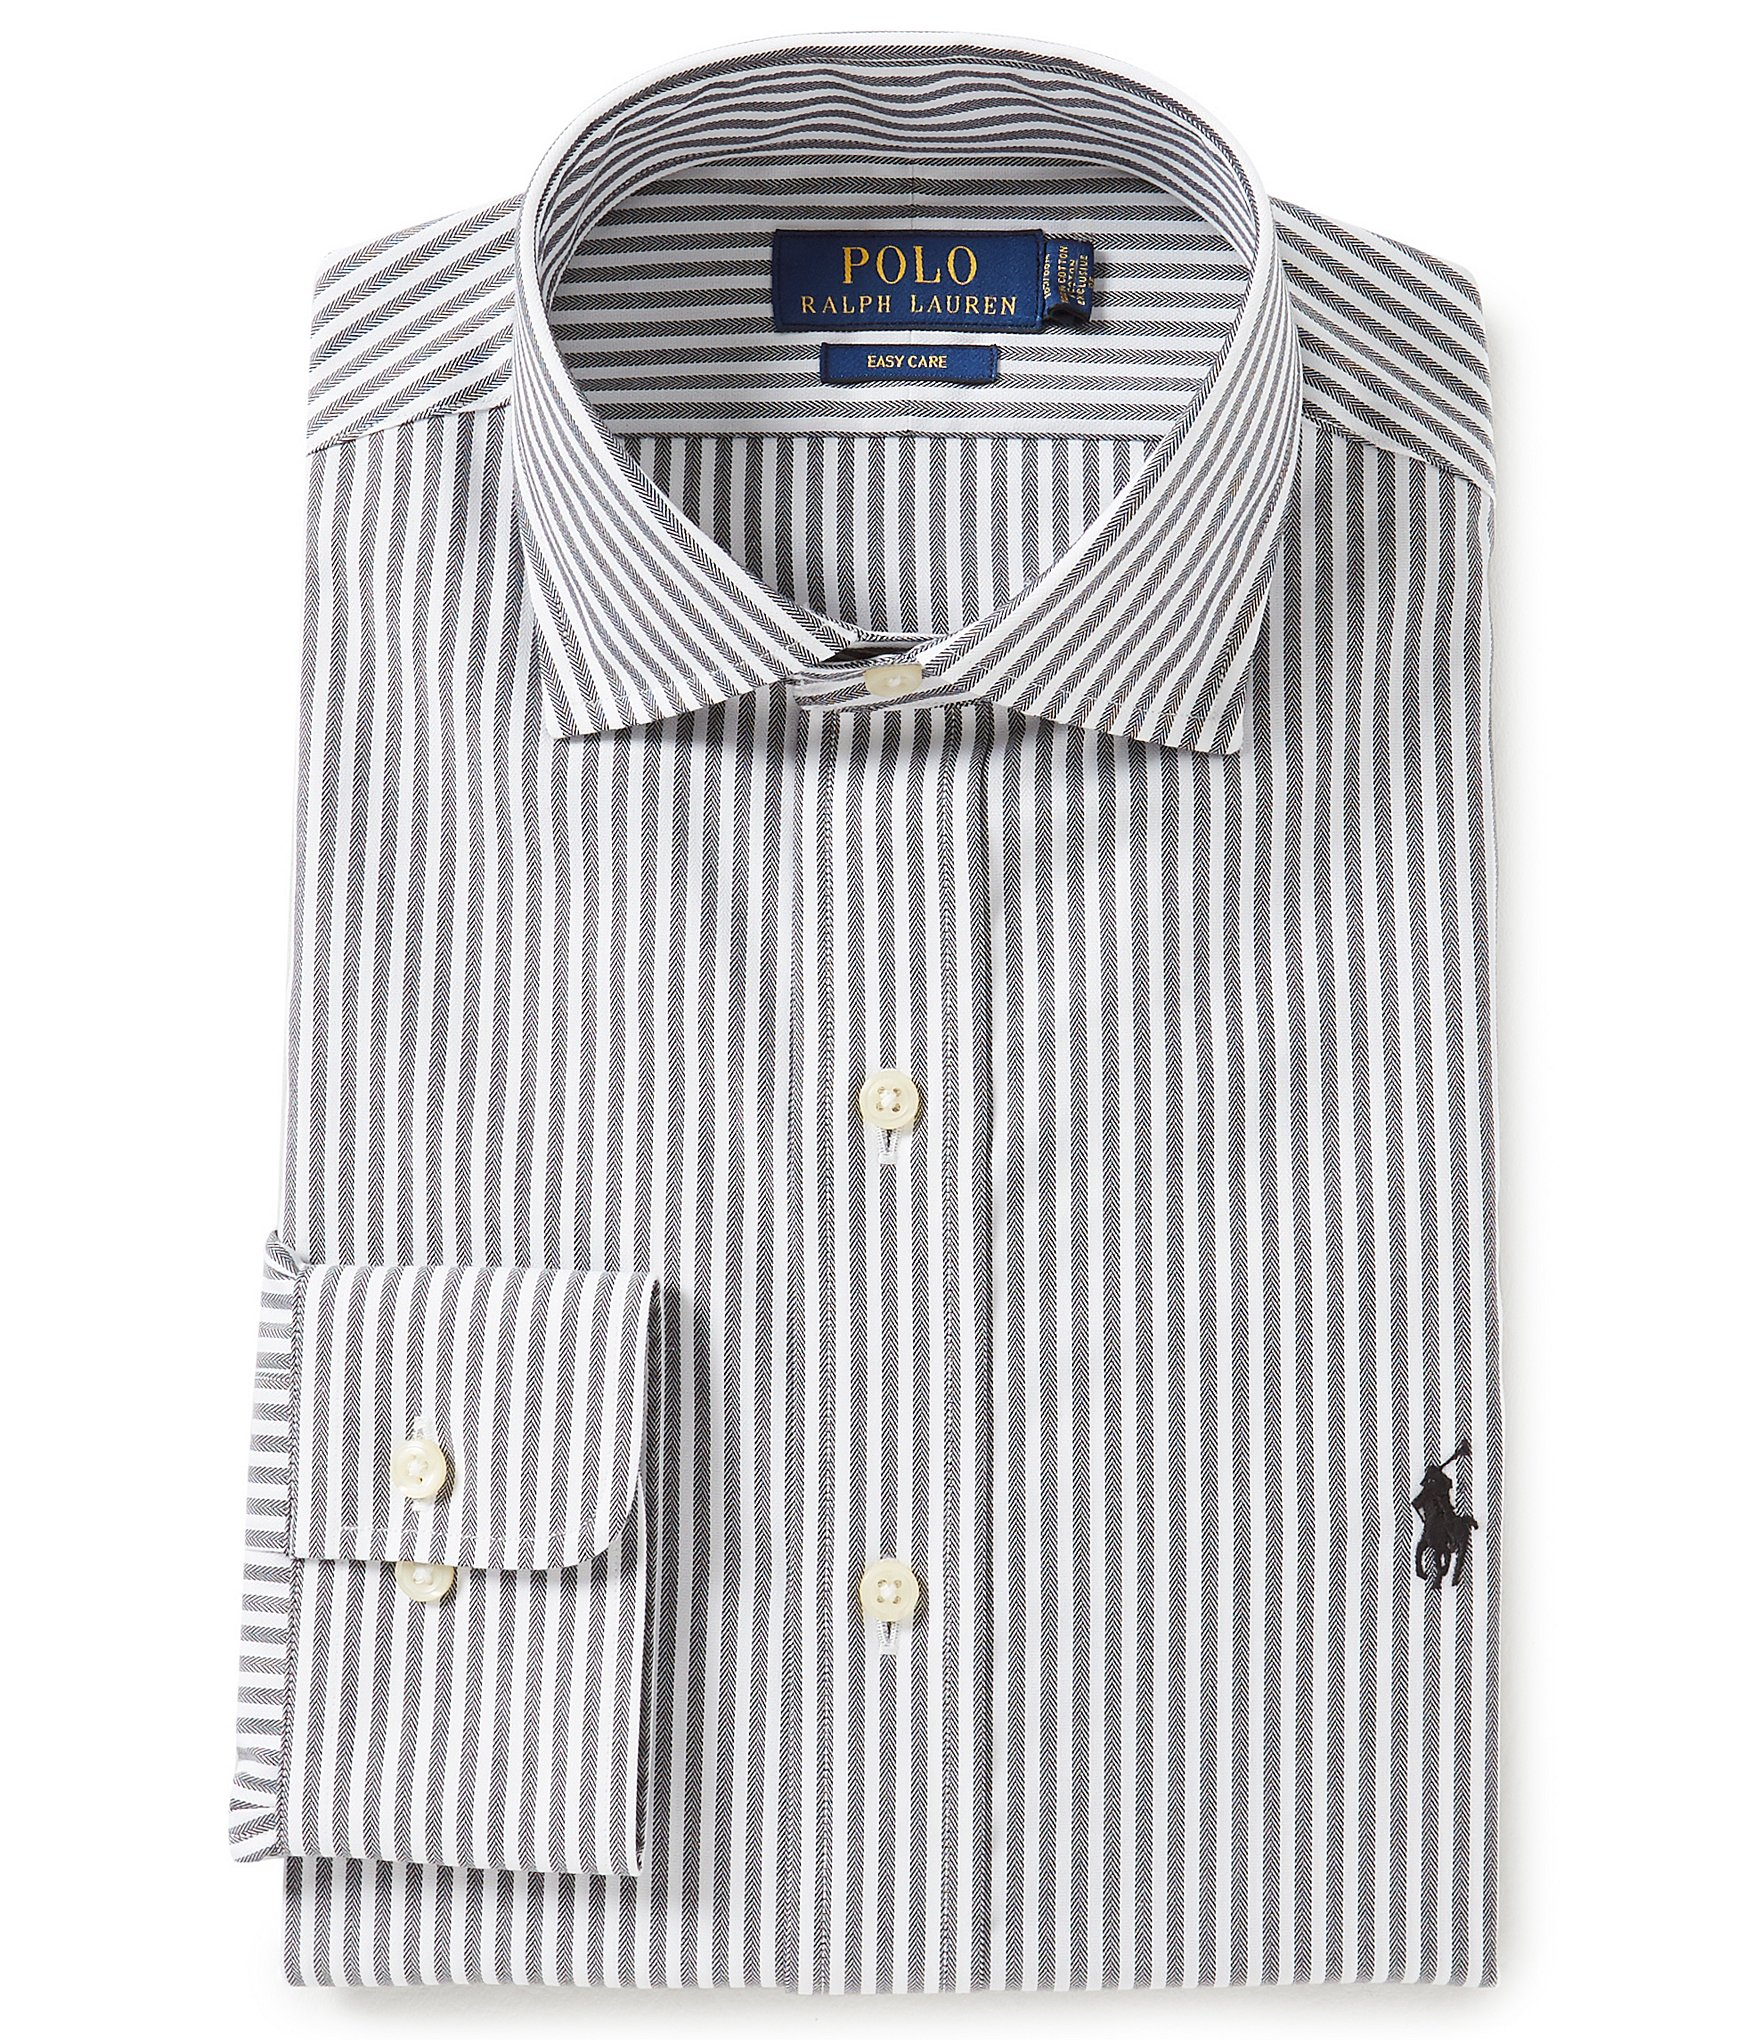 Polo ralph lauren easy care classic fit spread collar for Classic white dress shirt